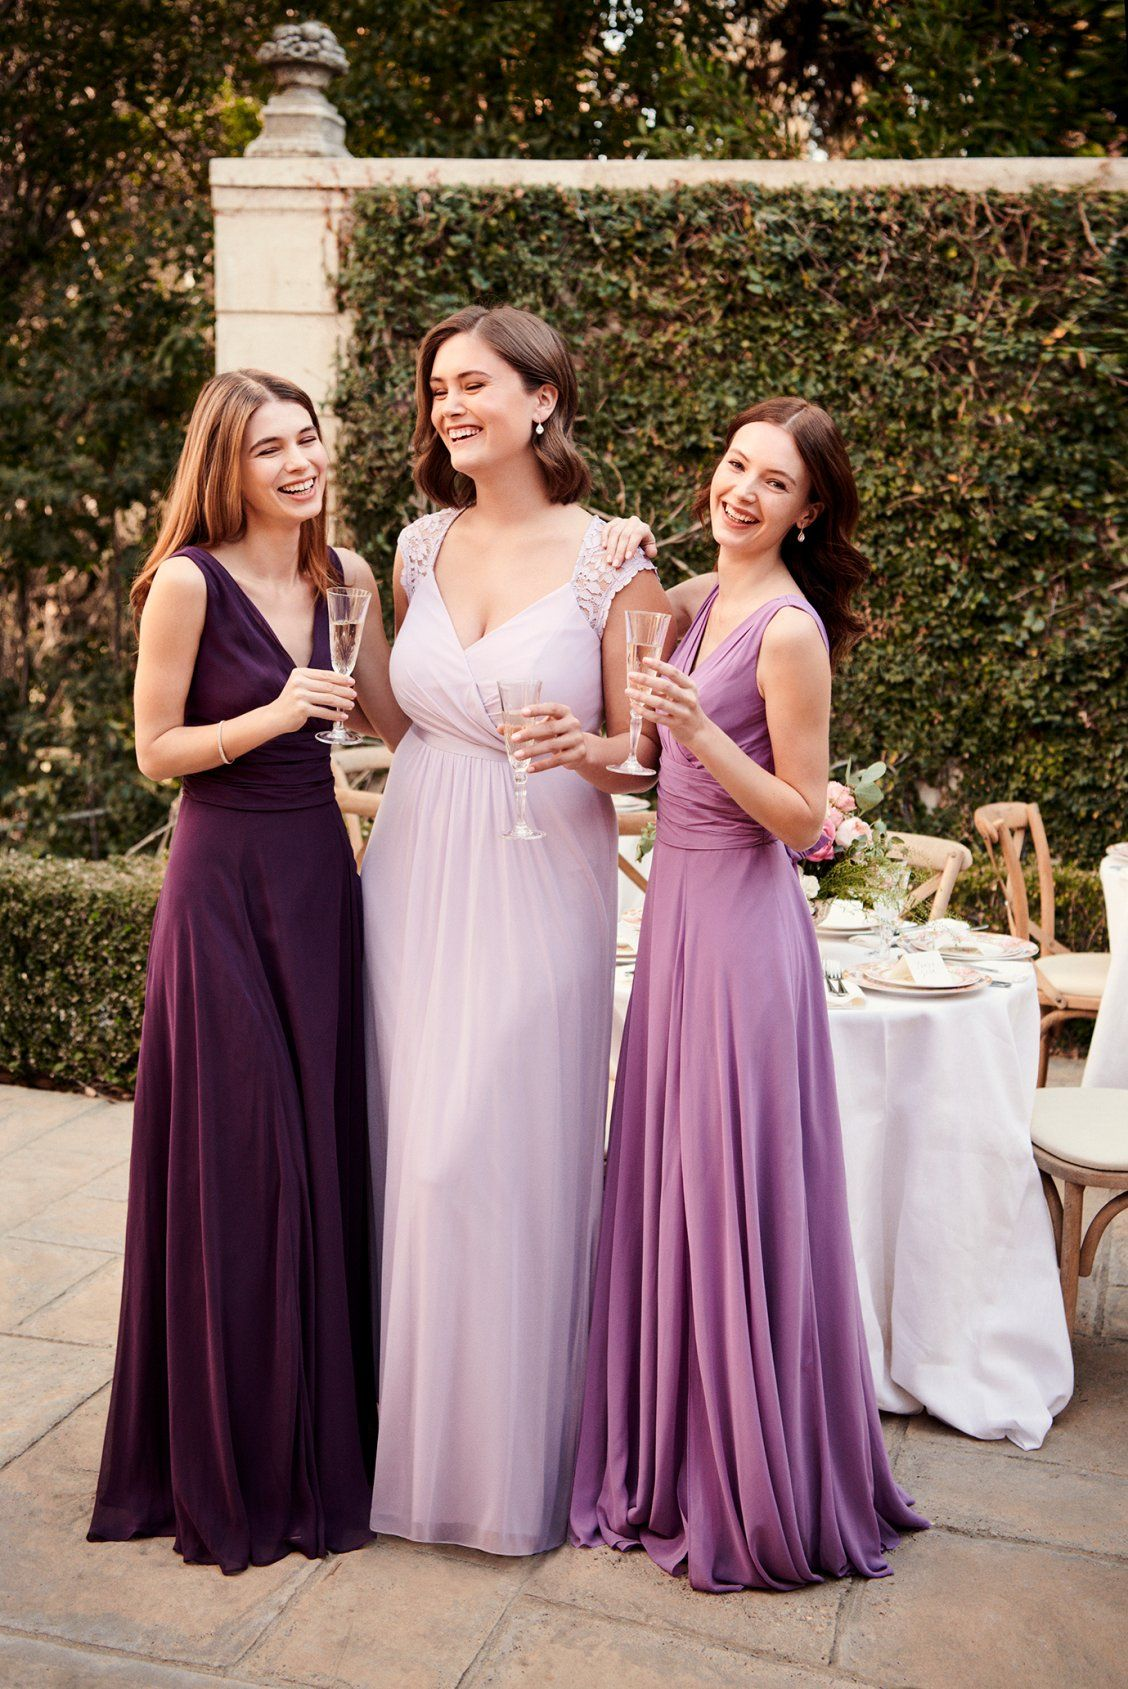 Pretty shades of purple bridesmaid dresses in complementary